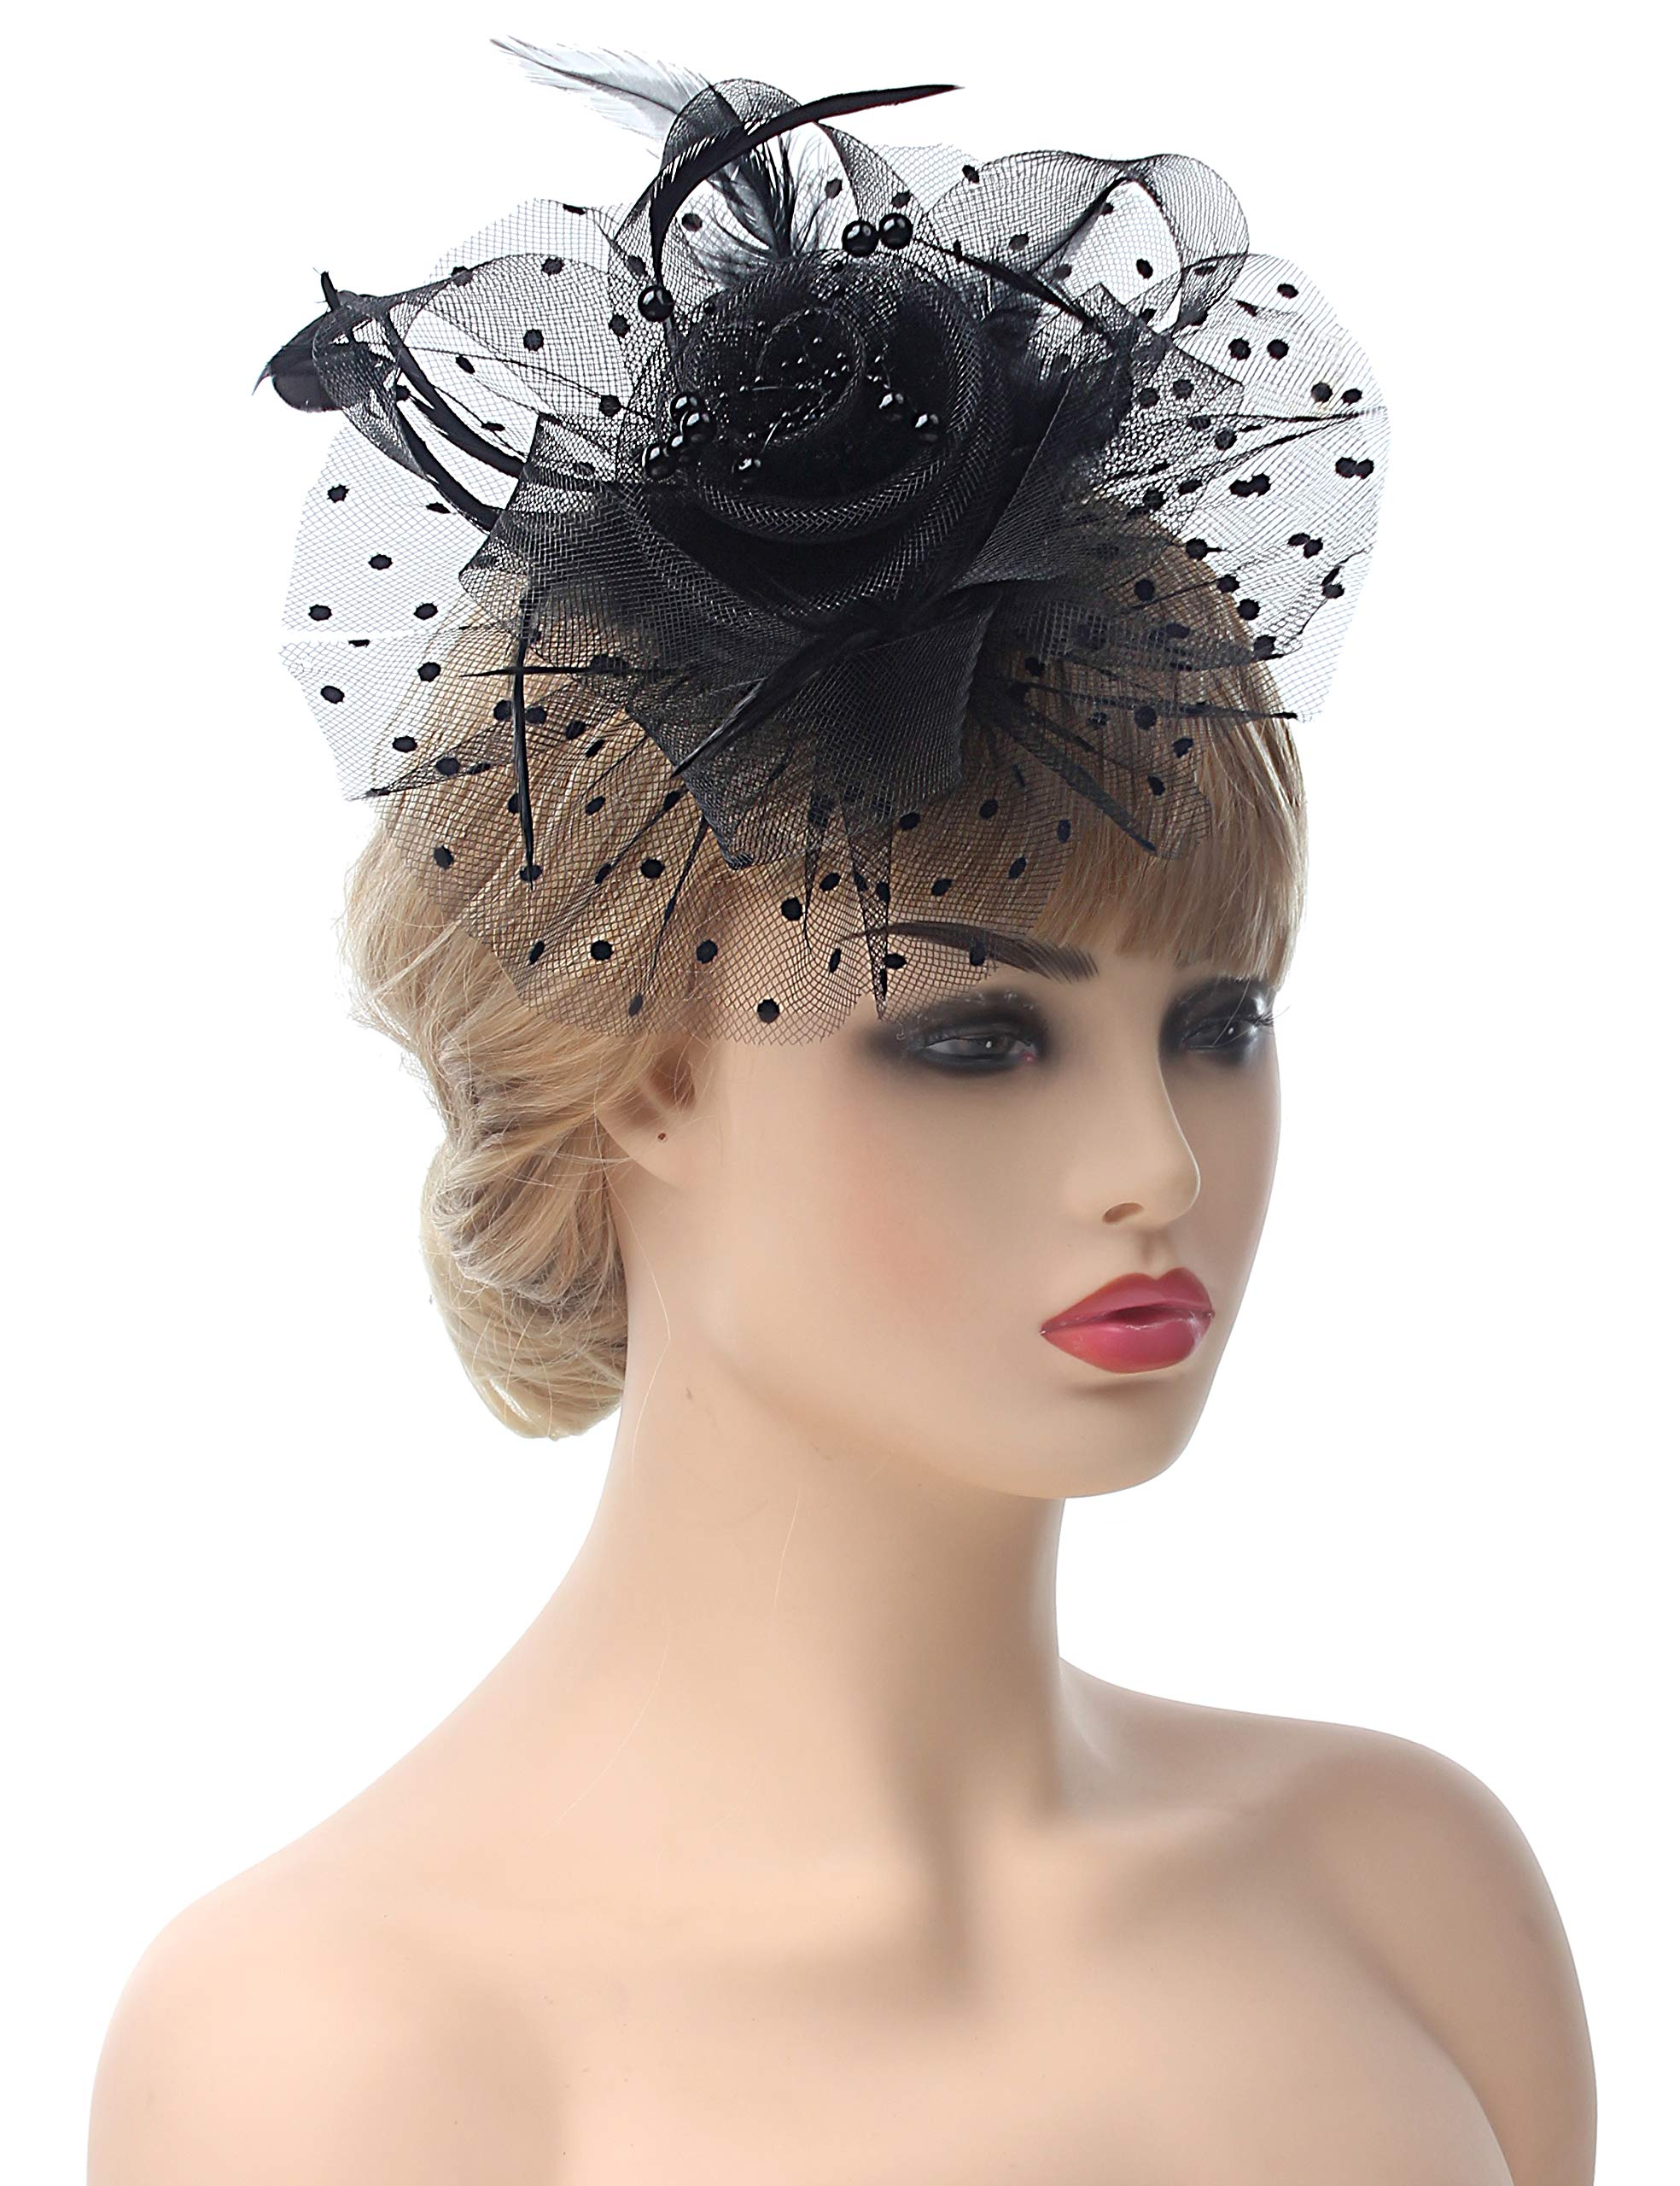 Myjoyday Fascinators Hat for Women Tea Party Headband Kentucky Derby Wedding Cocktail Flower Mesh Feathers Hair Clip (Black-2)